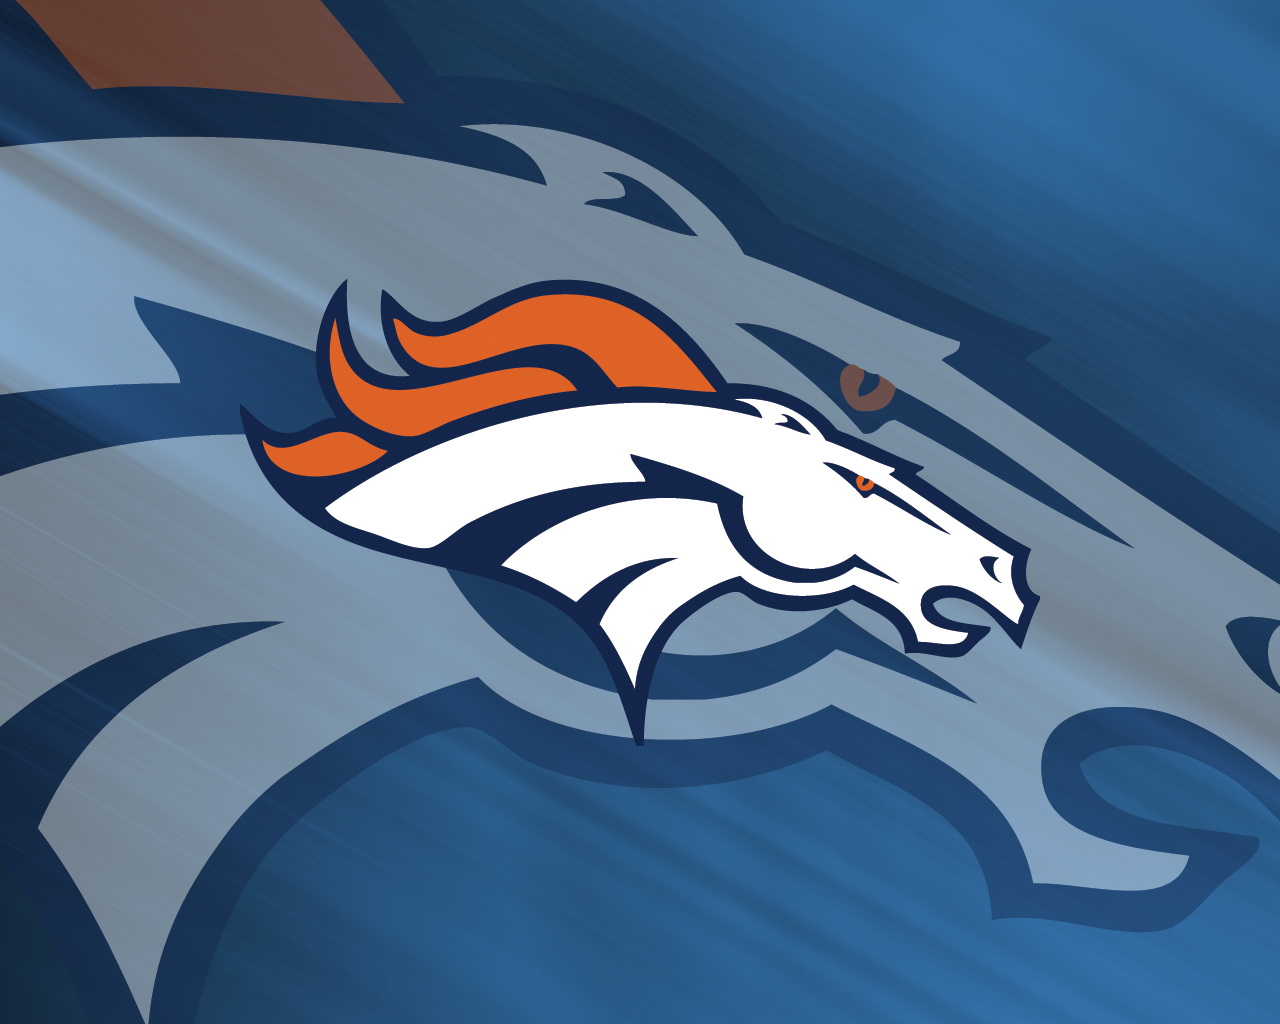 Denver Broncos 2012 Schedule Opponents Announced Broncotalk